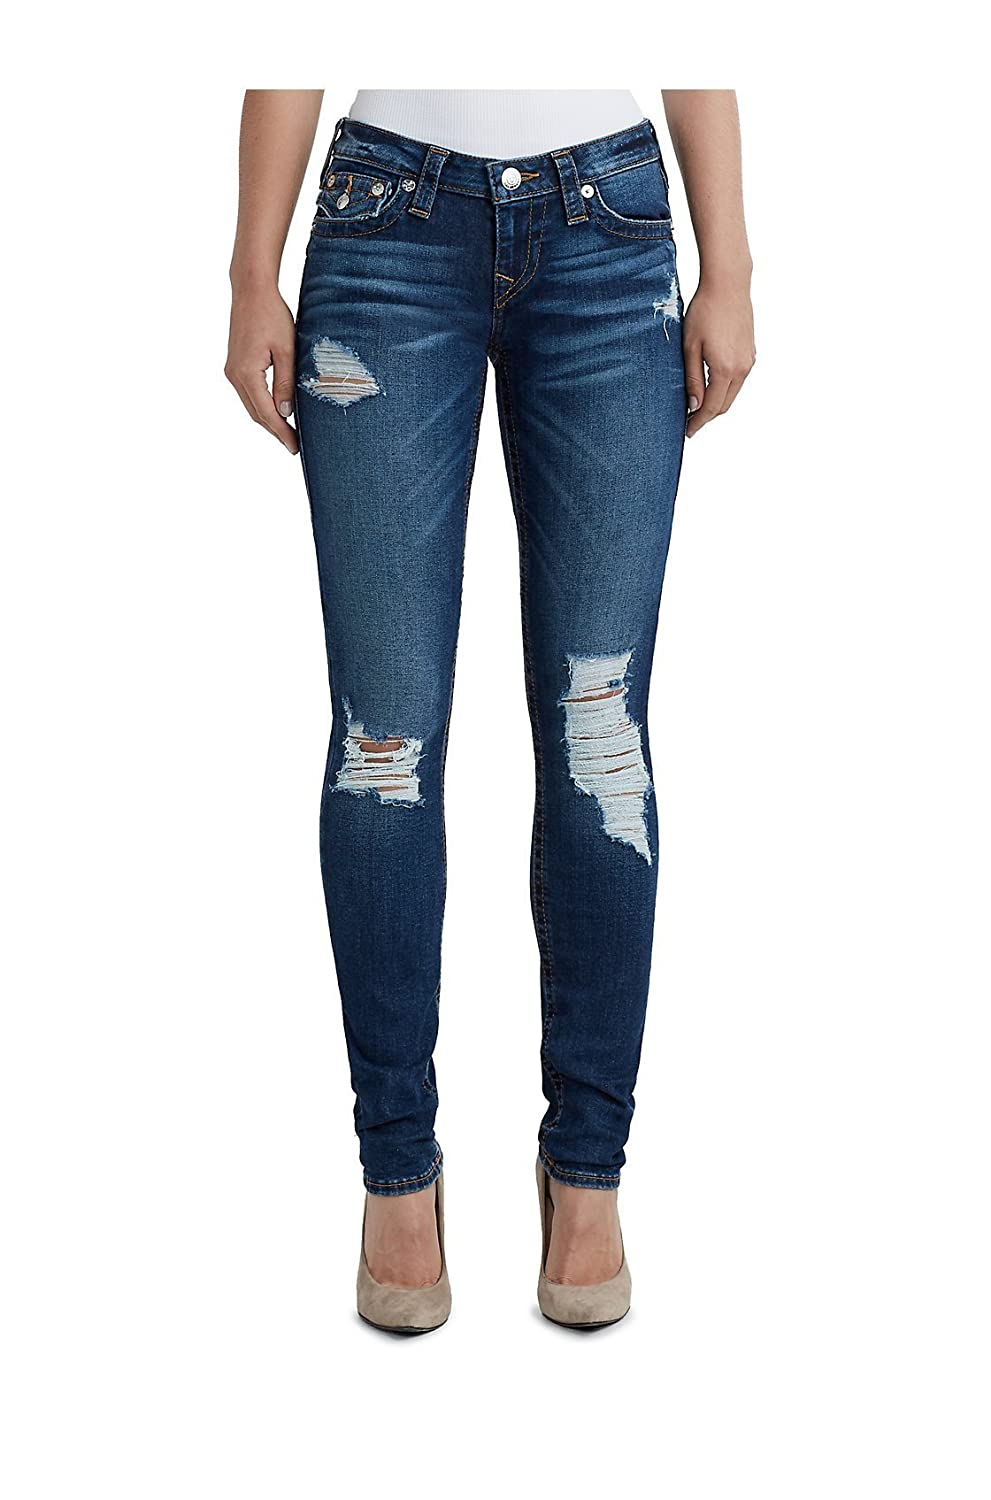 64d4b9e9e Top9  True Religion Women s Super Stretch Skinny Fit Distressed Jeans w  Flaps   Rips in Meteor Shower